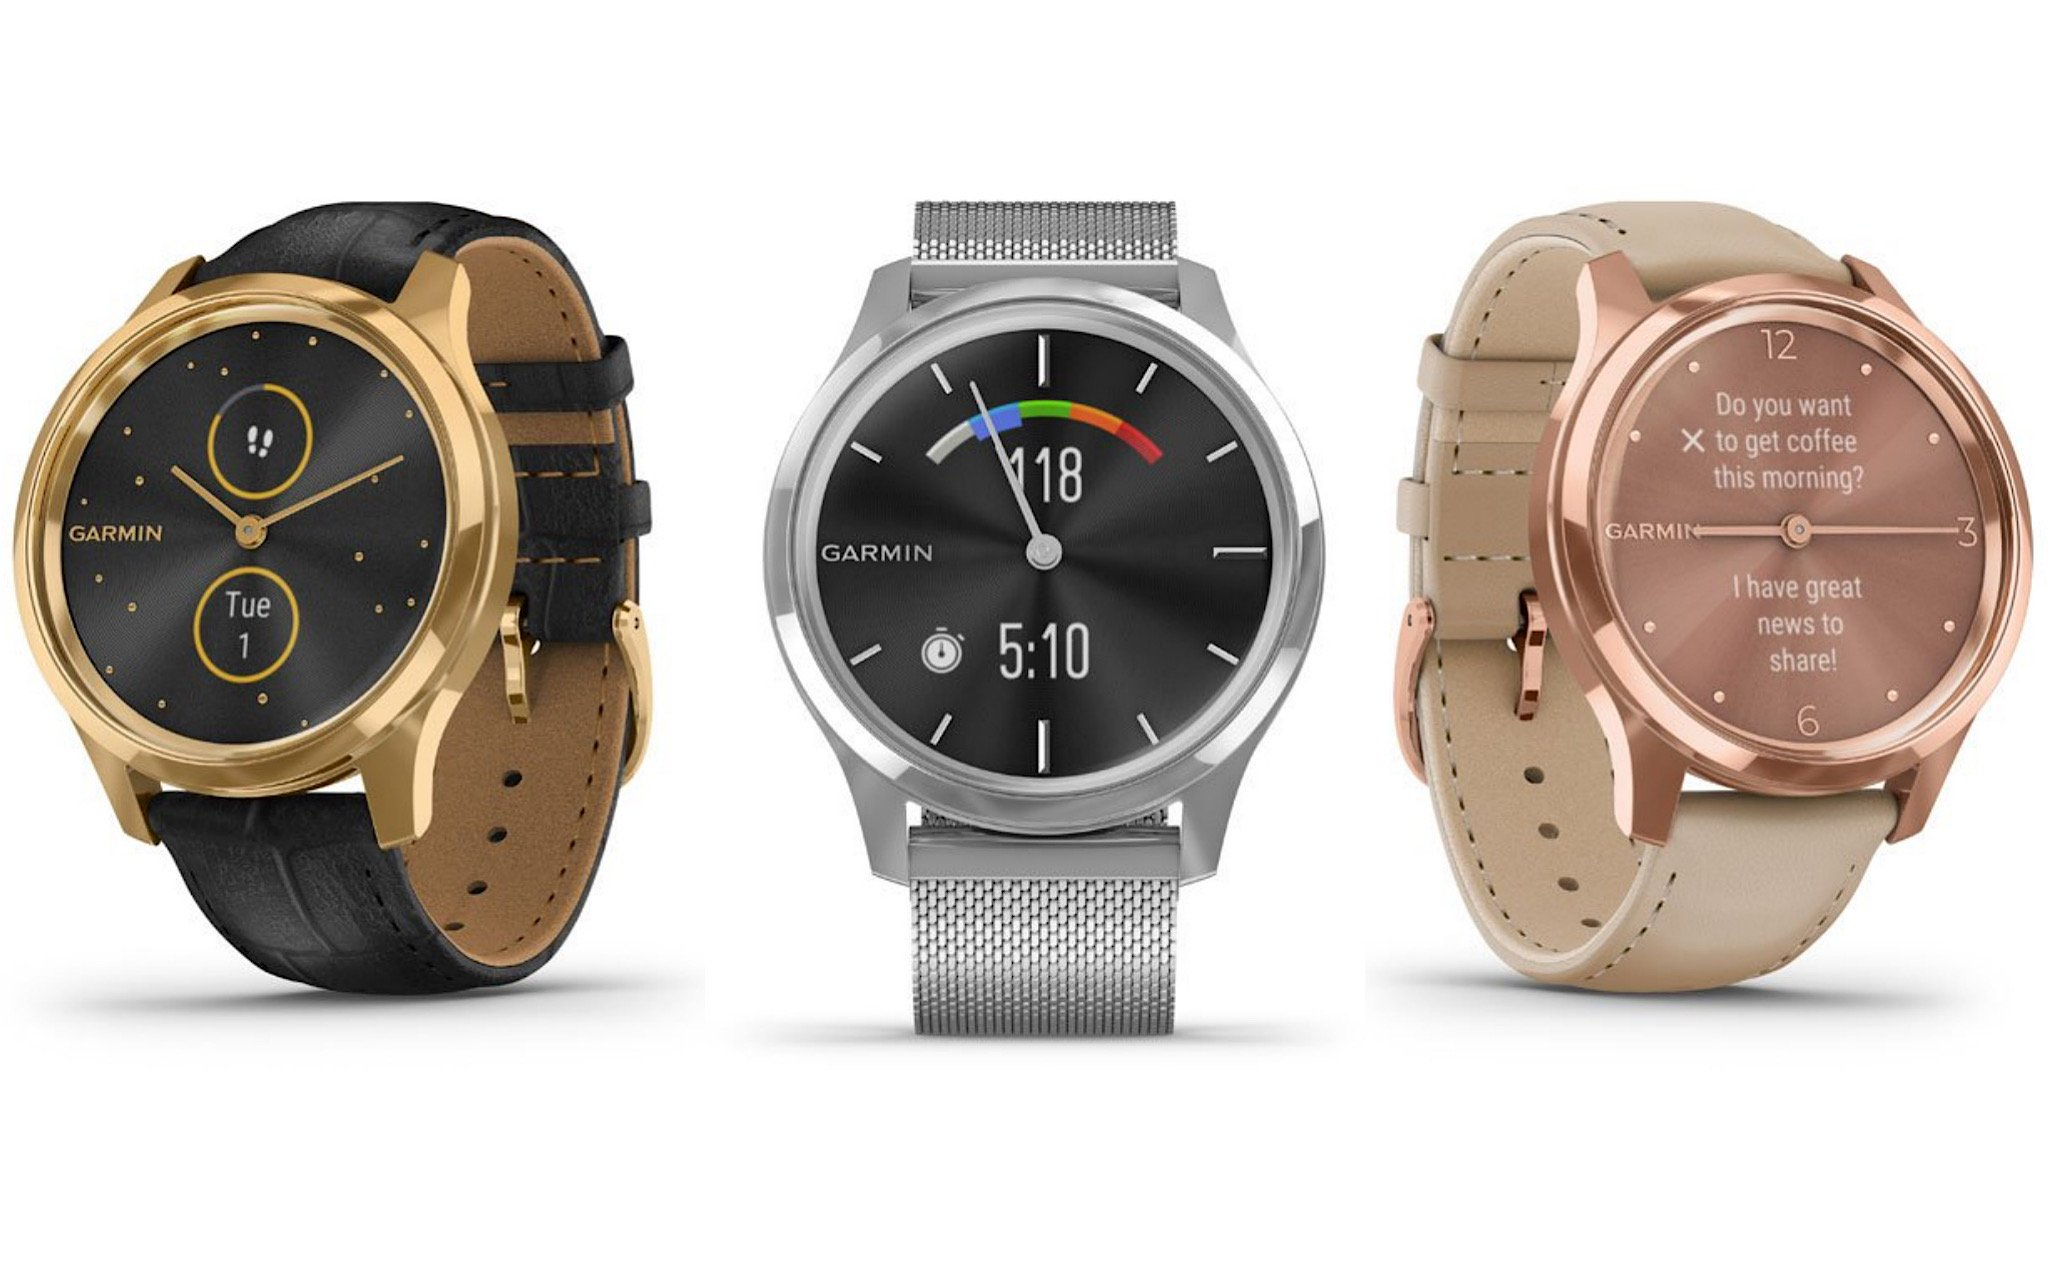 Garmin upgraded the vívomove, adding the Luxe and Style versions with premium materials and a color hybrid screen